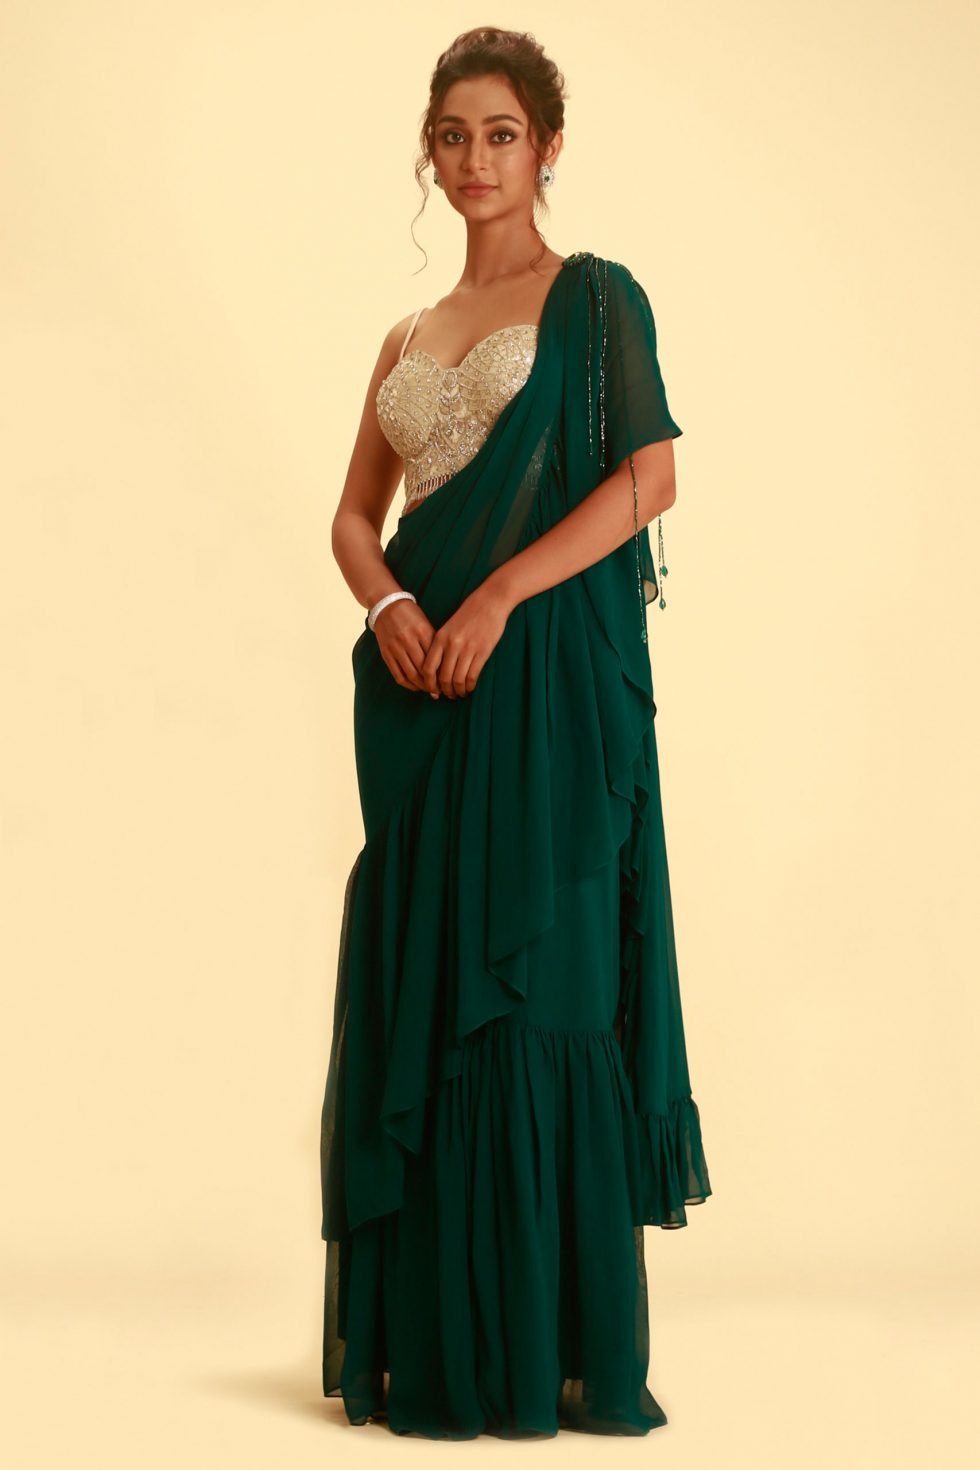 Bottle Green Pre Stitched Ruffle Frill Saree with Contrast Silver Beaded Blouse and Tassel Detail